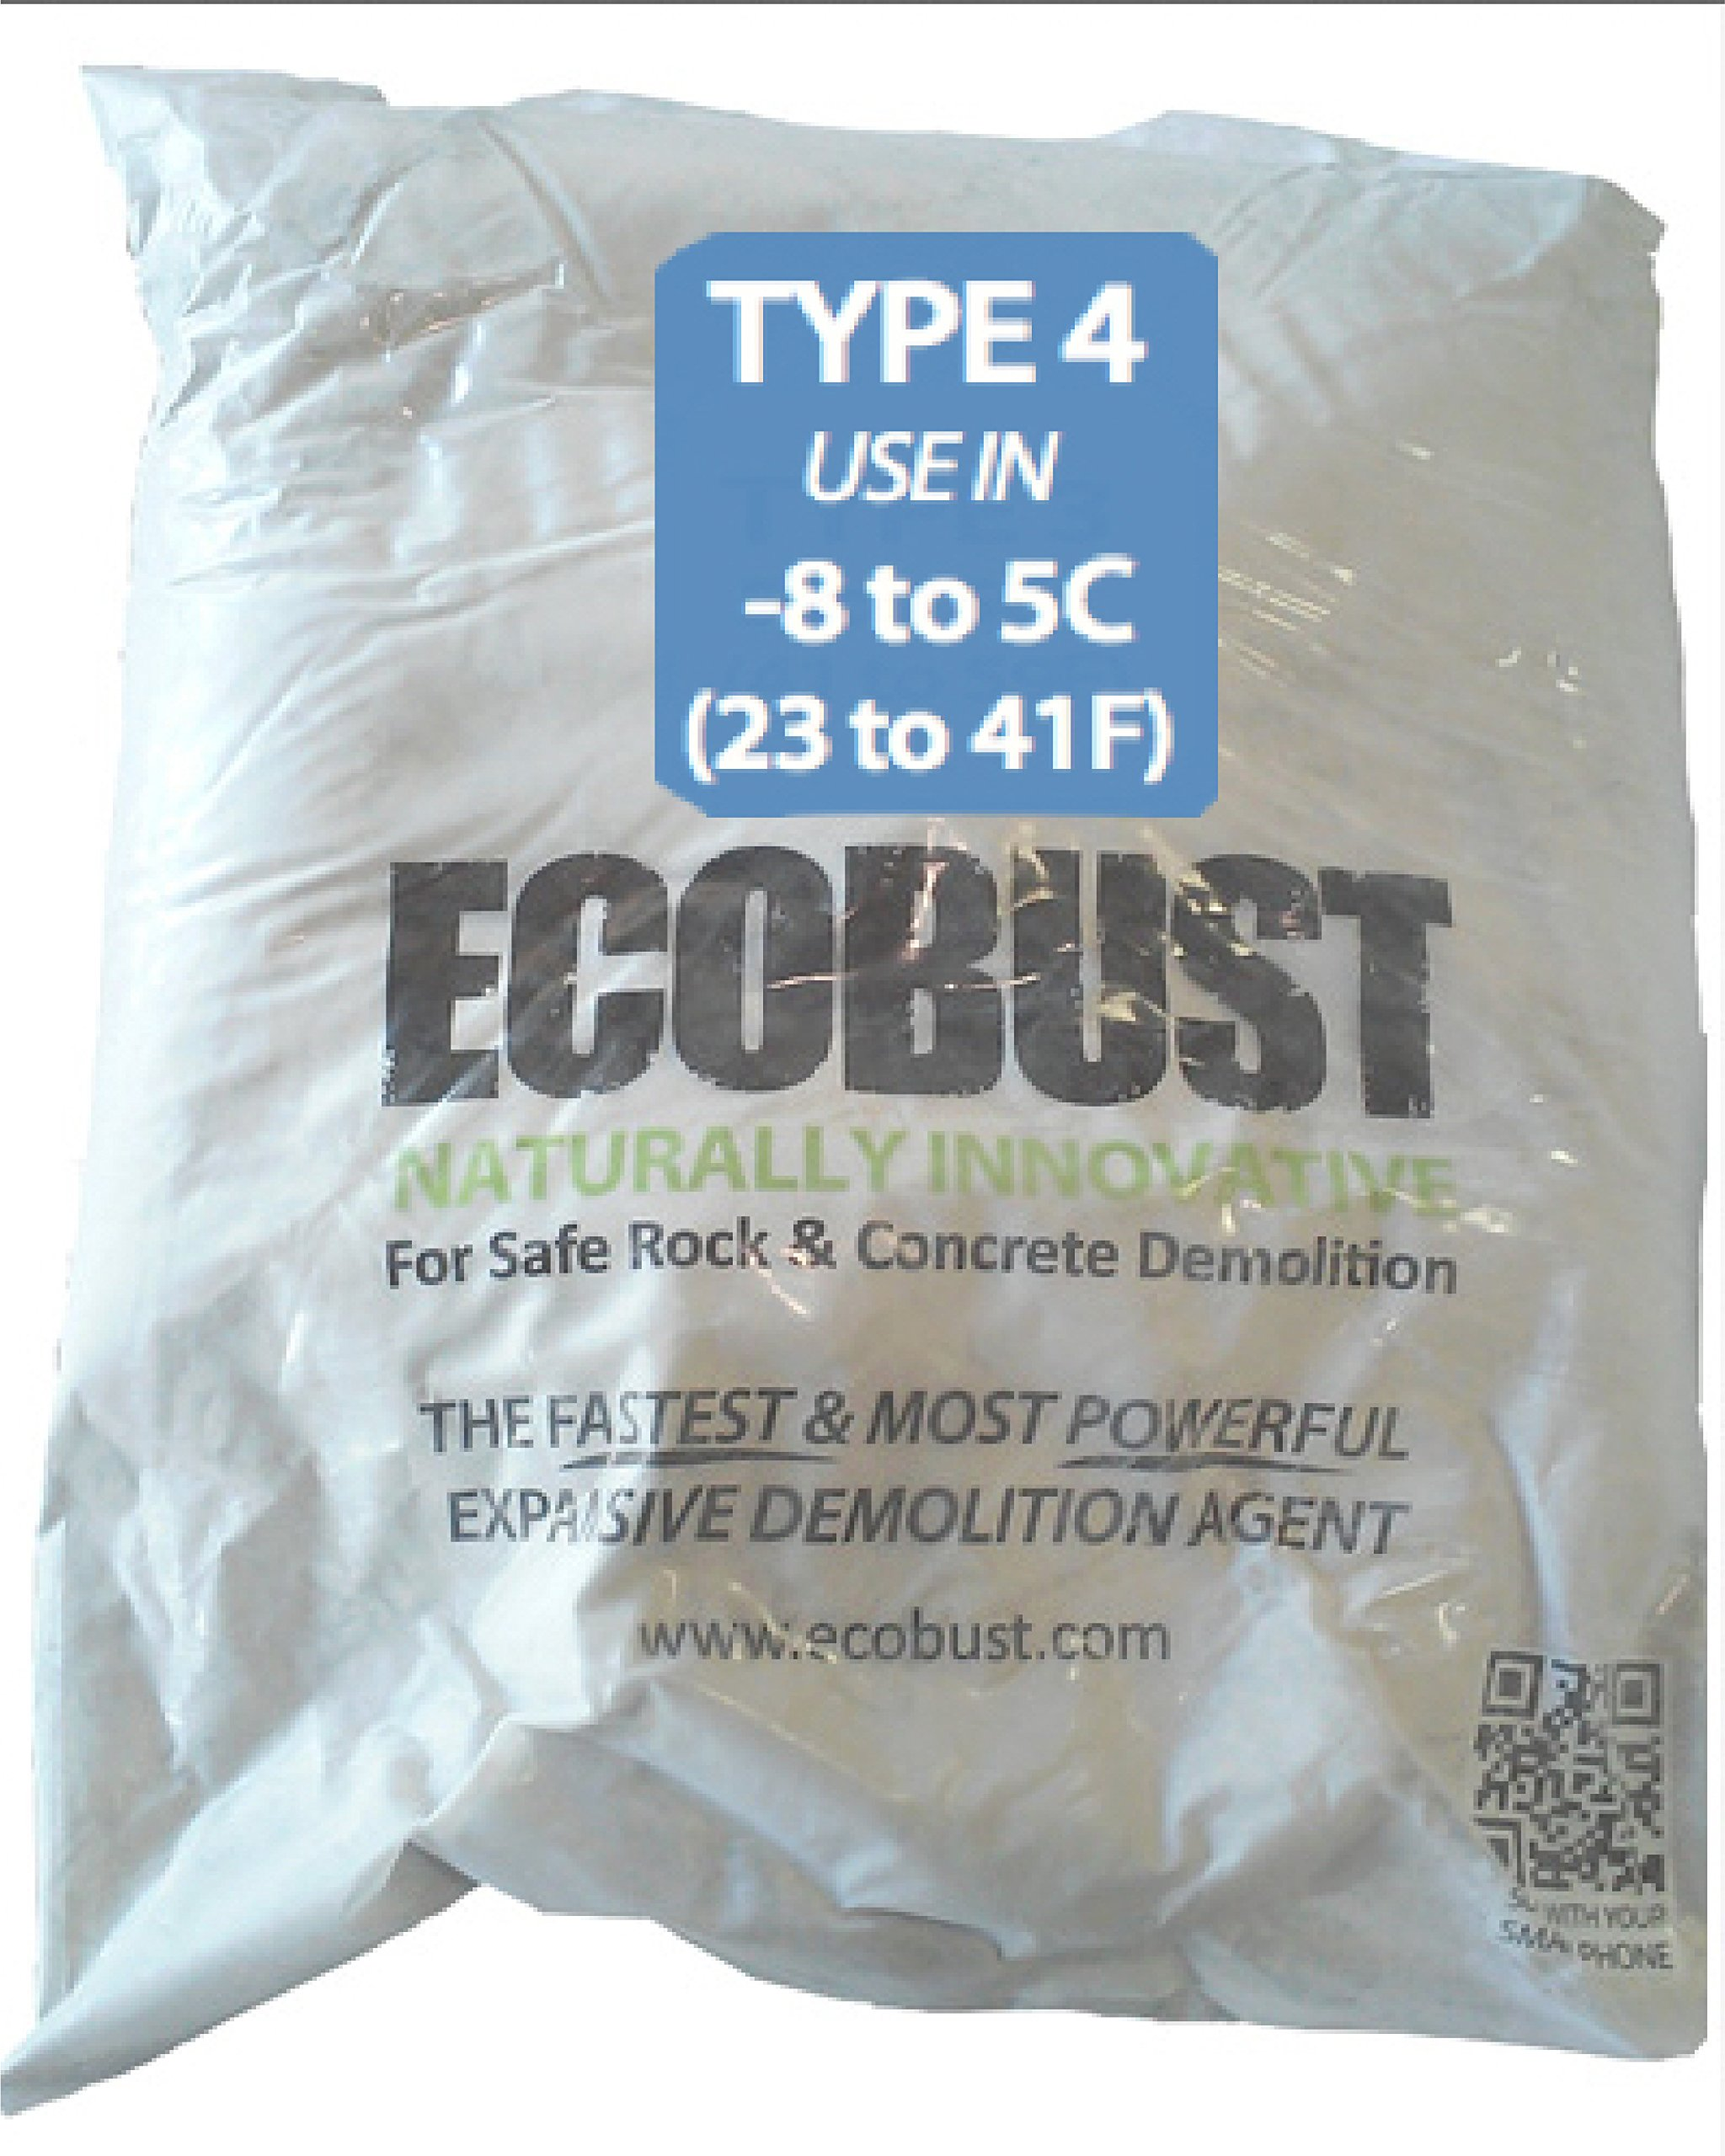 Ecobust USA Type 4 (18F to 40F) 11 lb Concrete Cutting and Rock Breaking Non-Combustive Demolition Agent